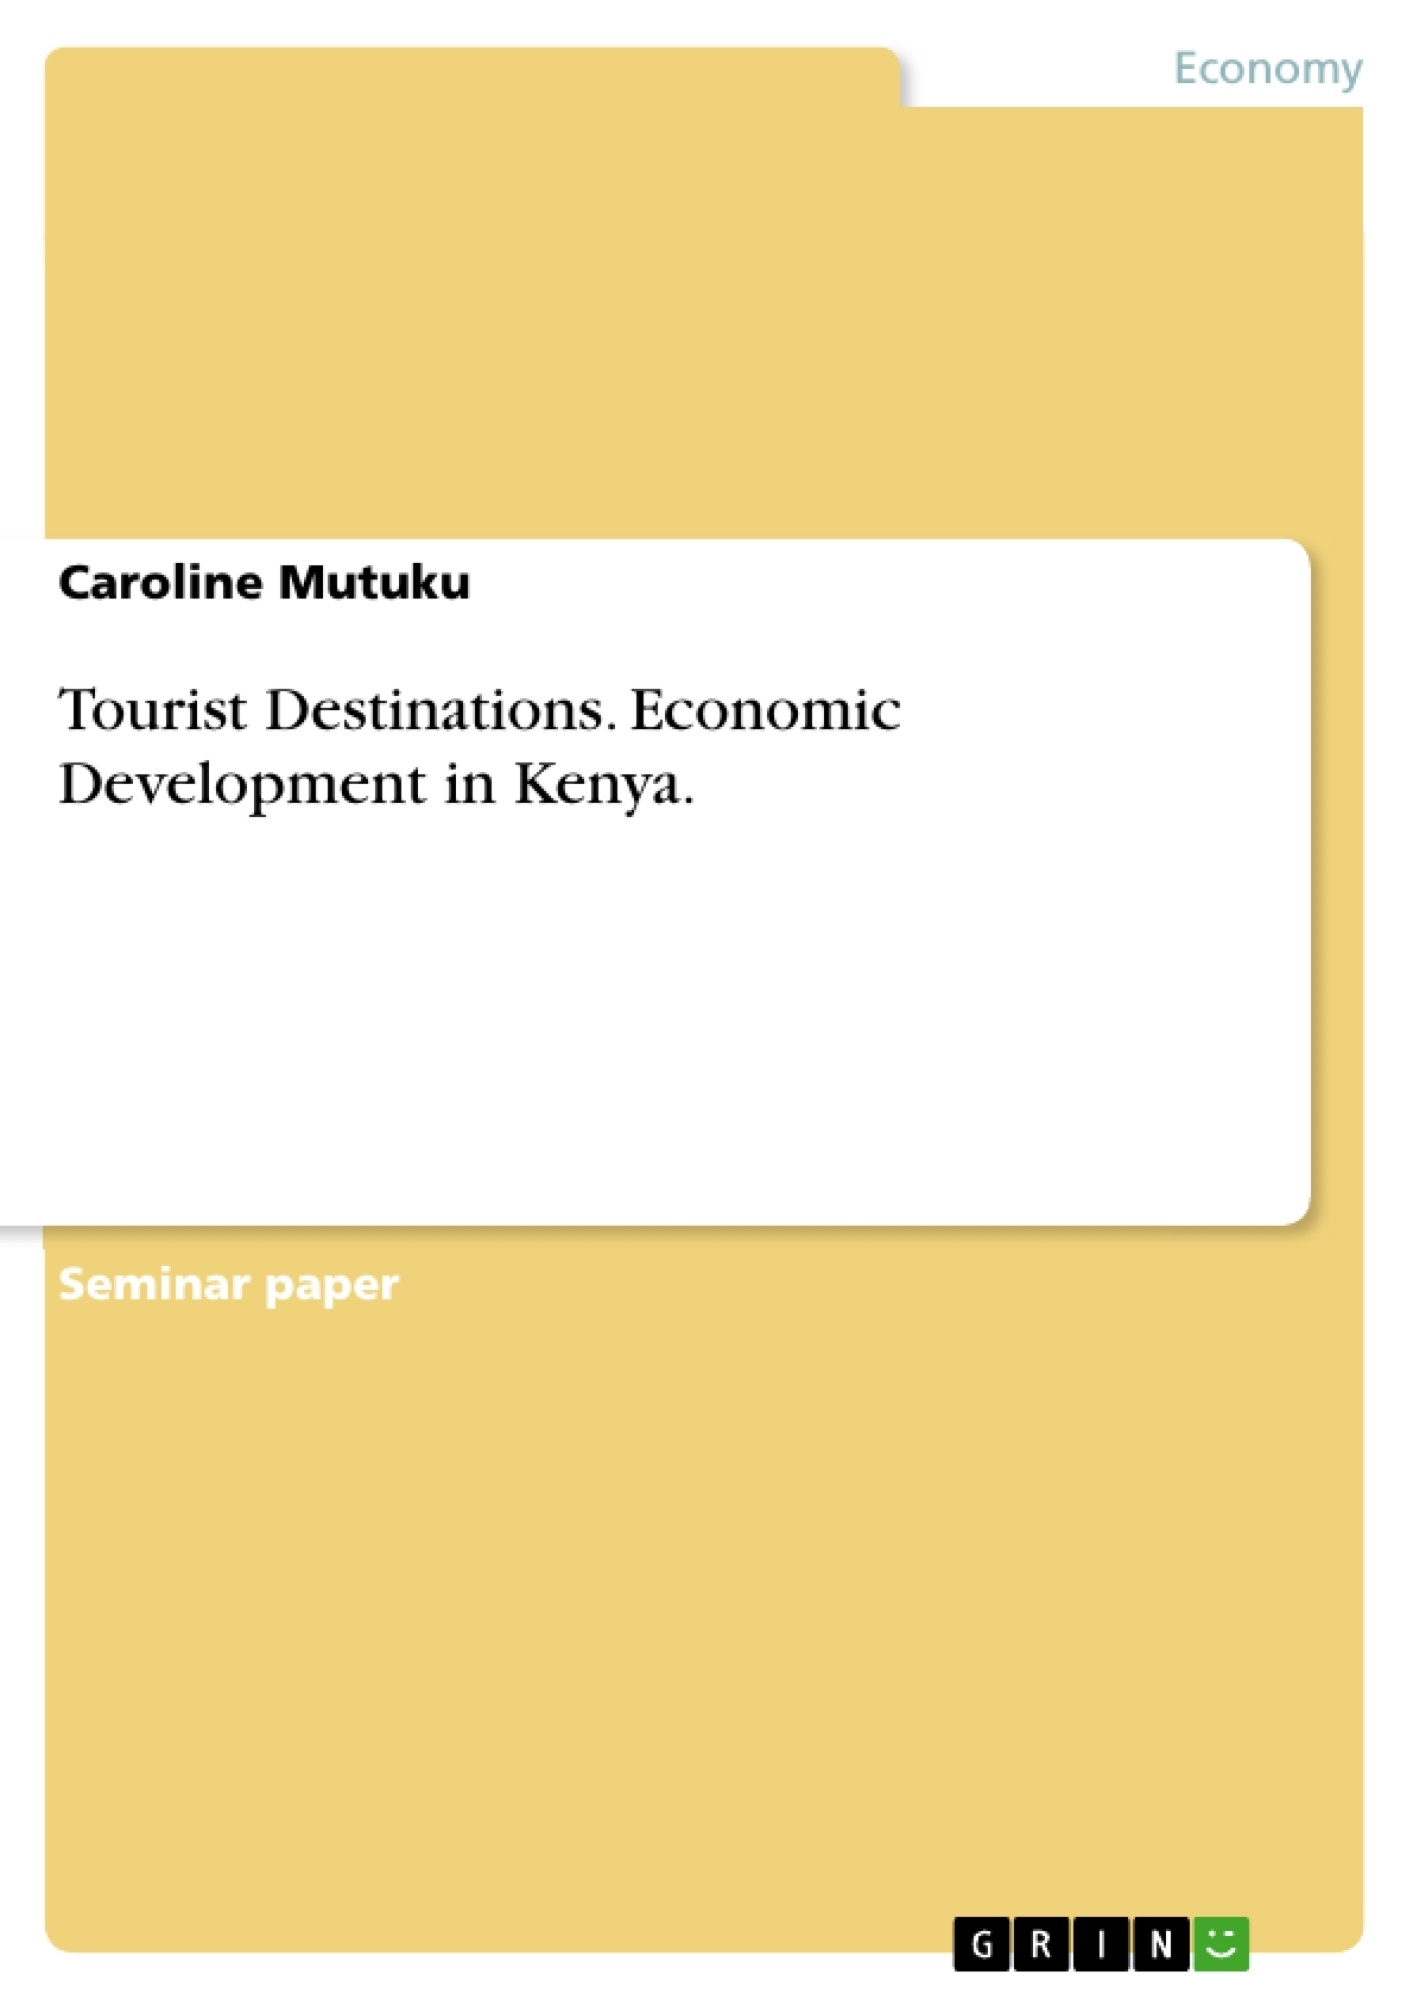 Title: Tourist Destinations. Economic Development in Kenya.